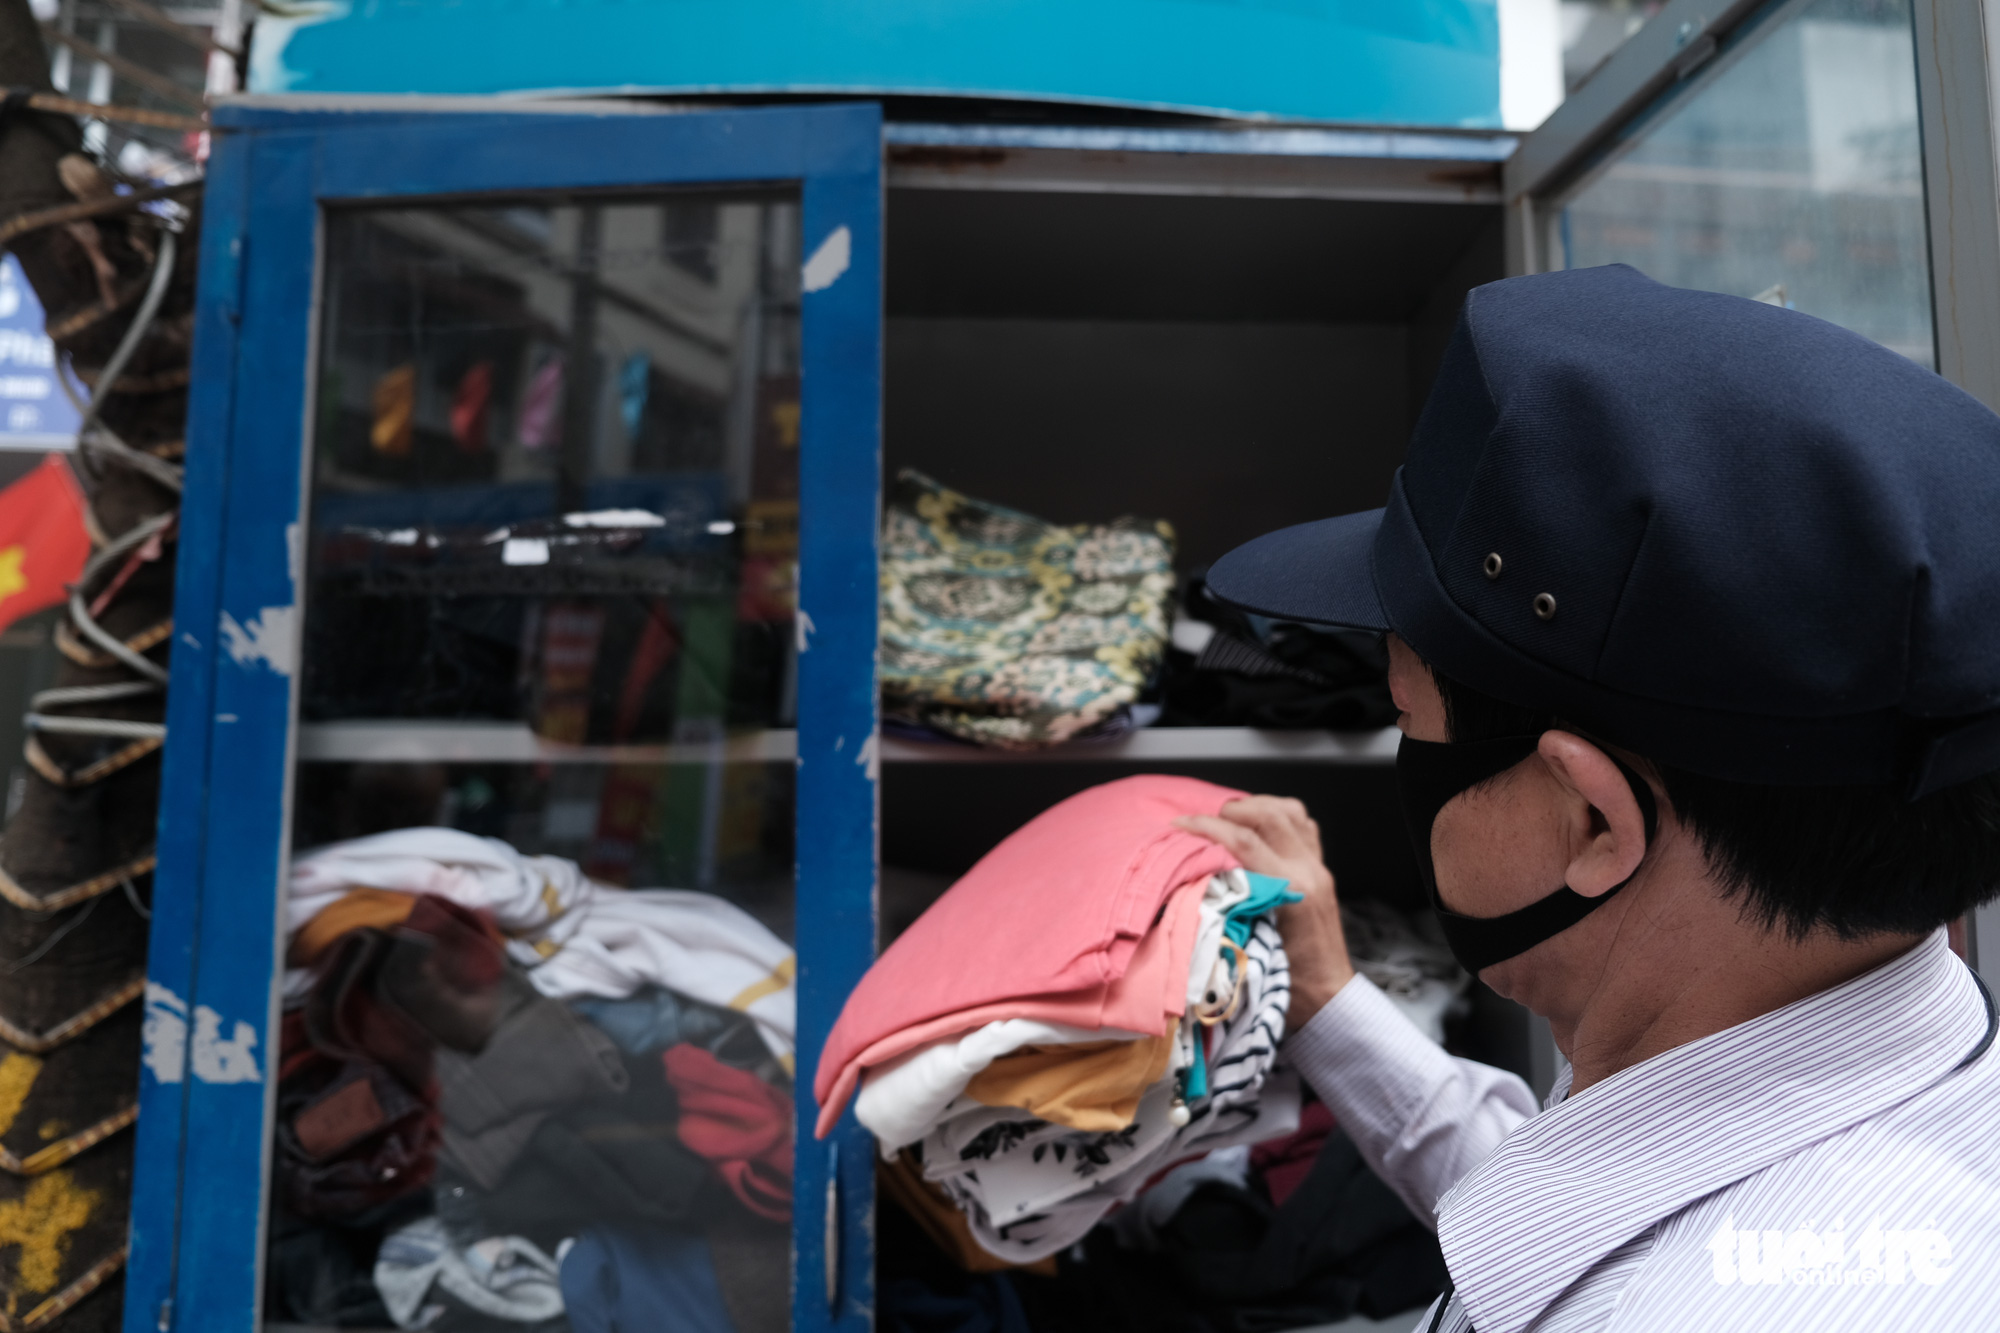 Tran Xuan Trieu, the security guard at a charitable store in Hanoi, Vietnam, checks on the store's free clothes cabinet. Photo: Song La / Tuoi Tre